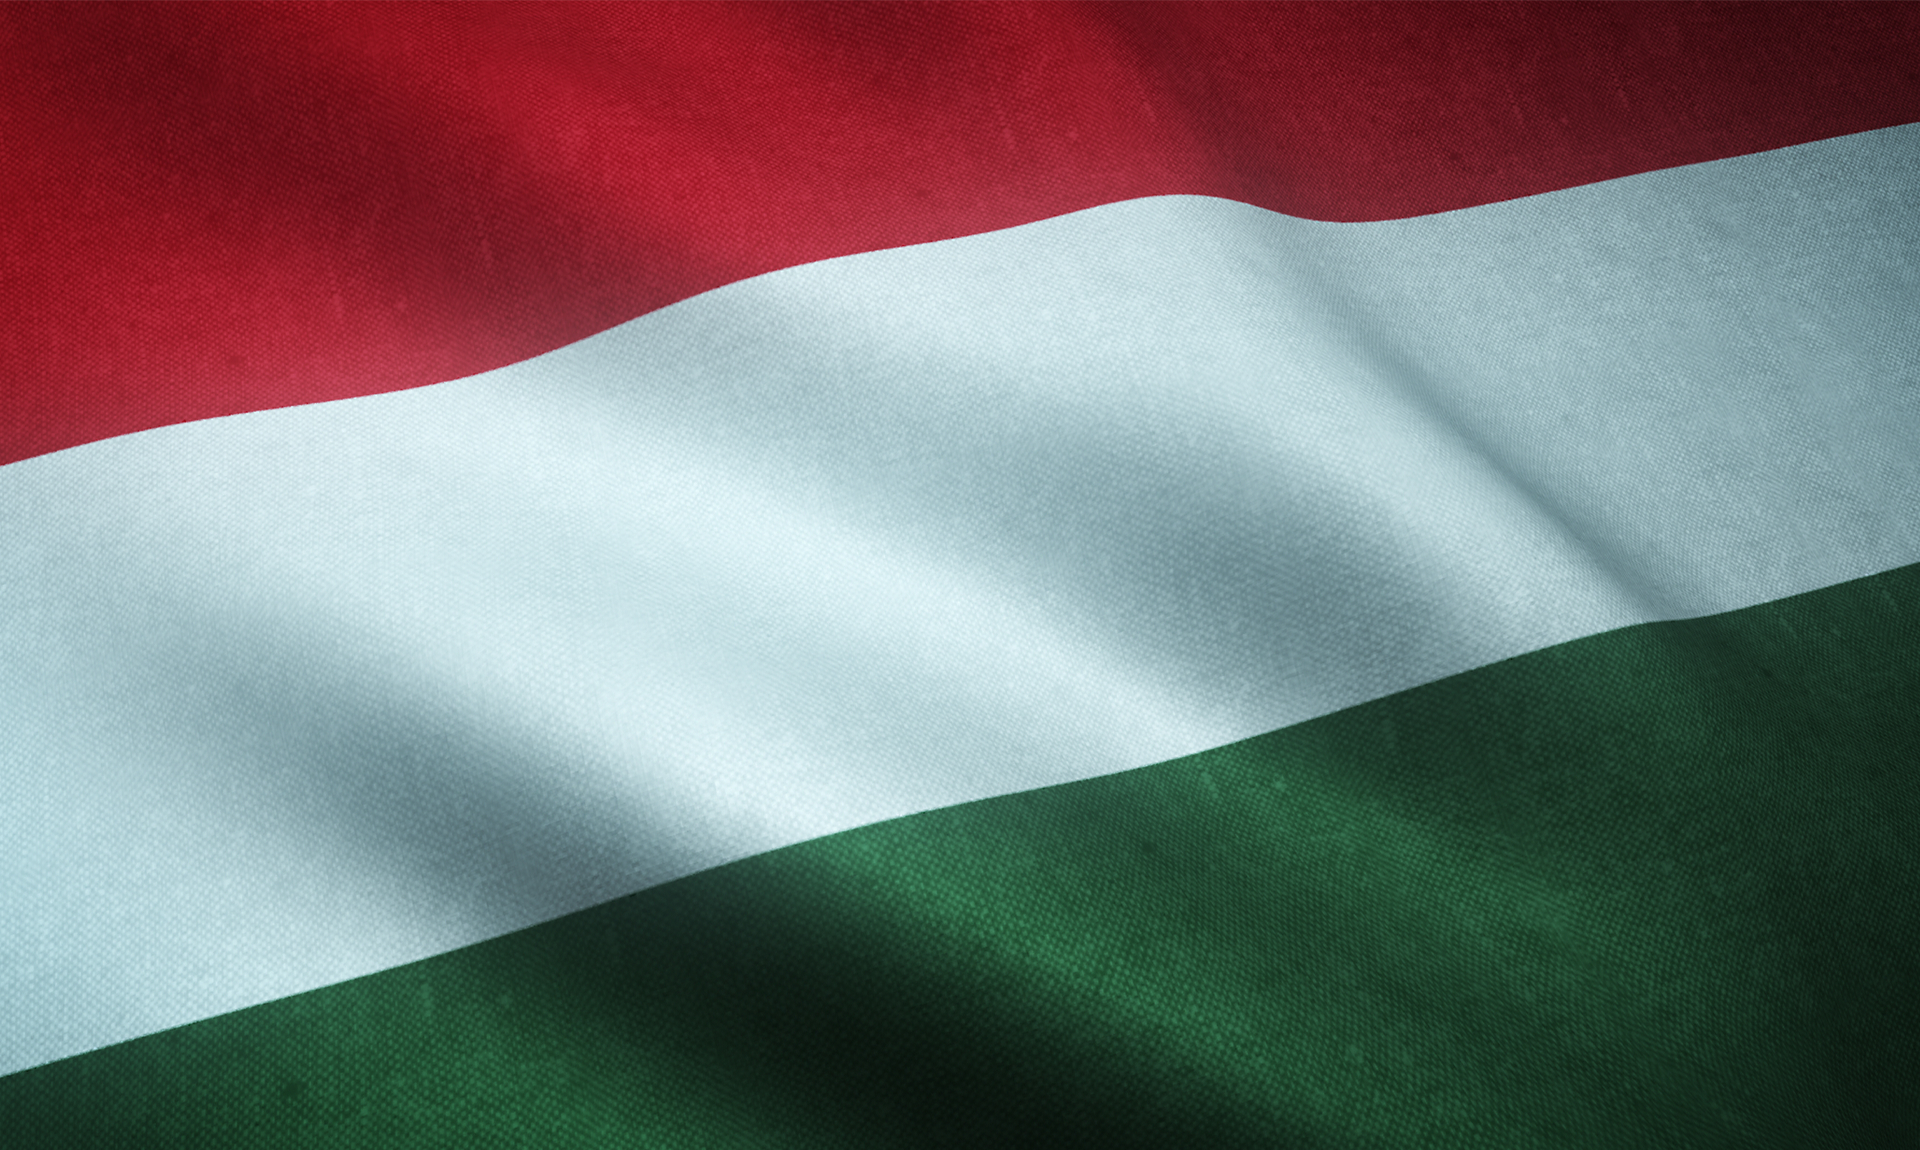 Esportare in Ungheria/What to export in Hungary 2